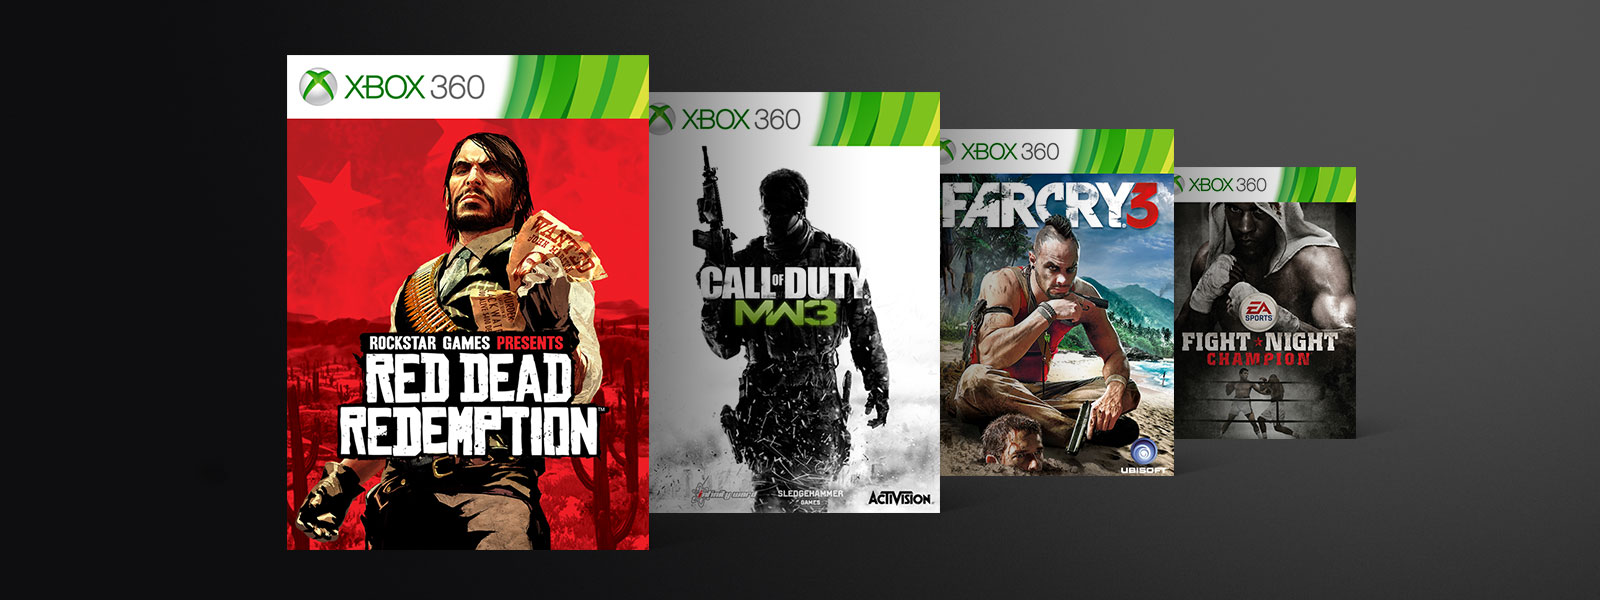 A collage of box art from Xbox Backward Compatible games on sale. Red Dead Redemption, Call of Duty: Modern Warfare 3, Far Cry 3, Fight Night Champion